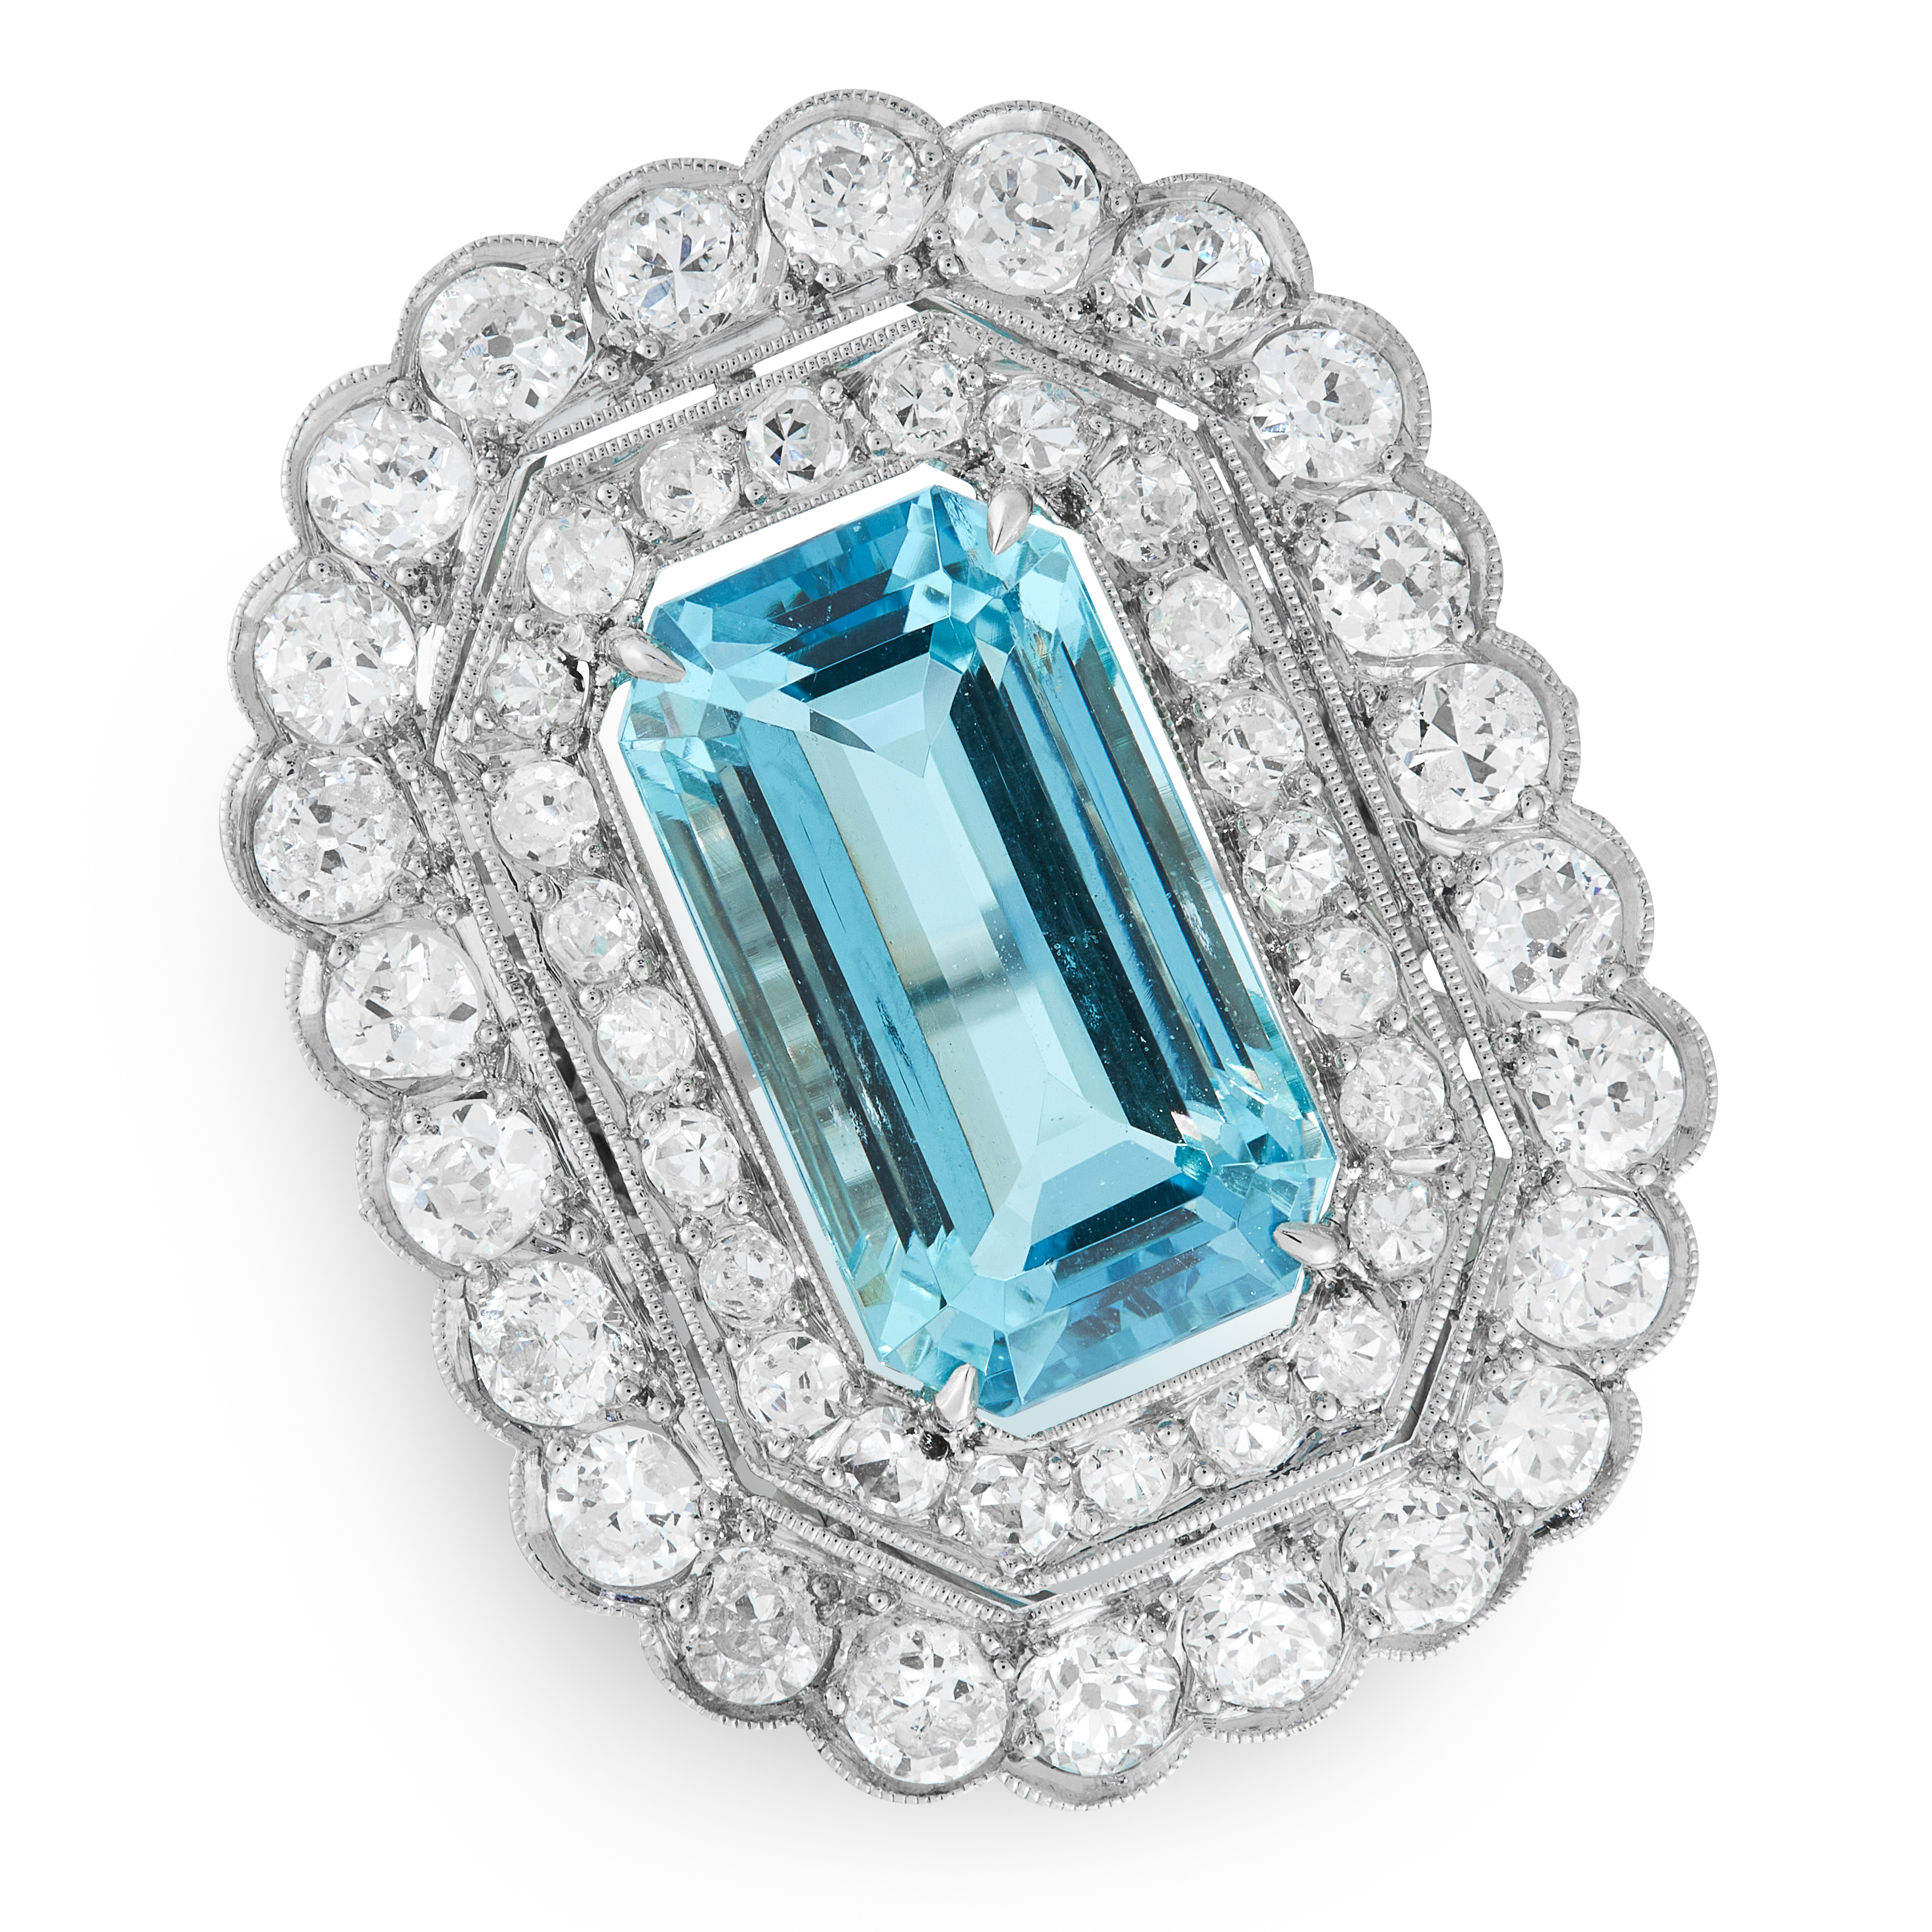 AN AQUAMARINE AND DIAMOND CLUSTER RING set with an emerald cut aquamarine of 8.26 carats within a